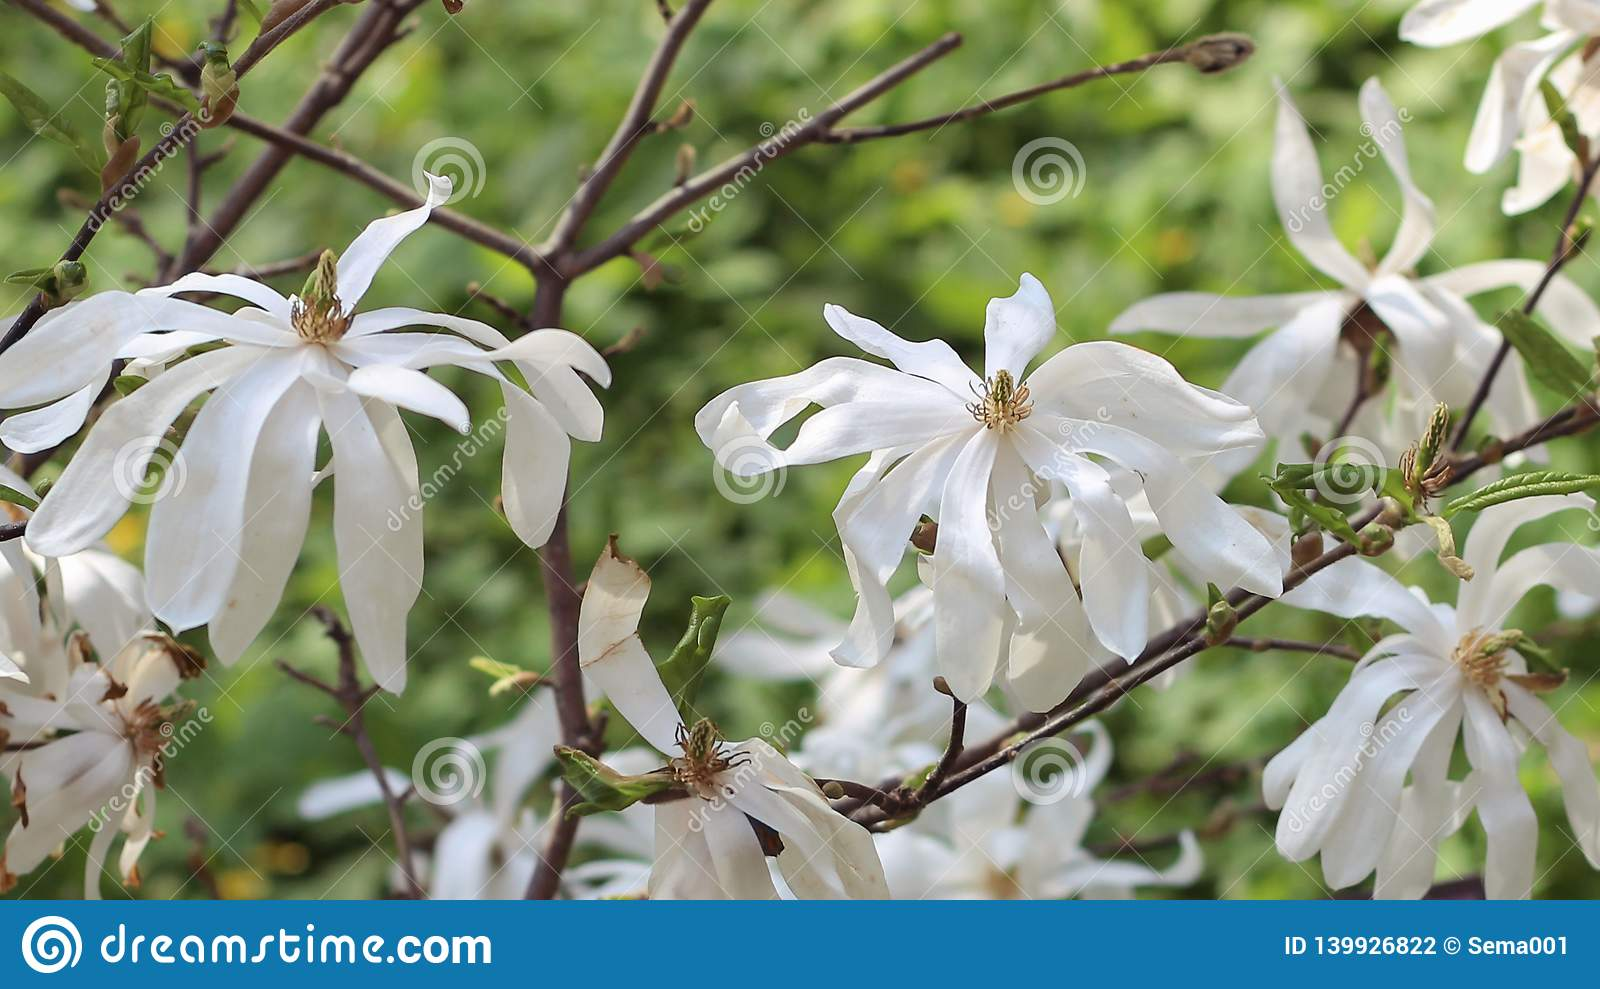 Flowering Magnolia. Spectacular white Magnolia flowers on a Sunny spring day. Blurred background in the background.